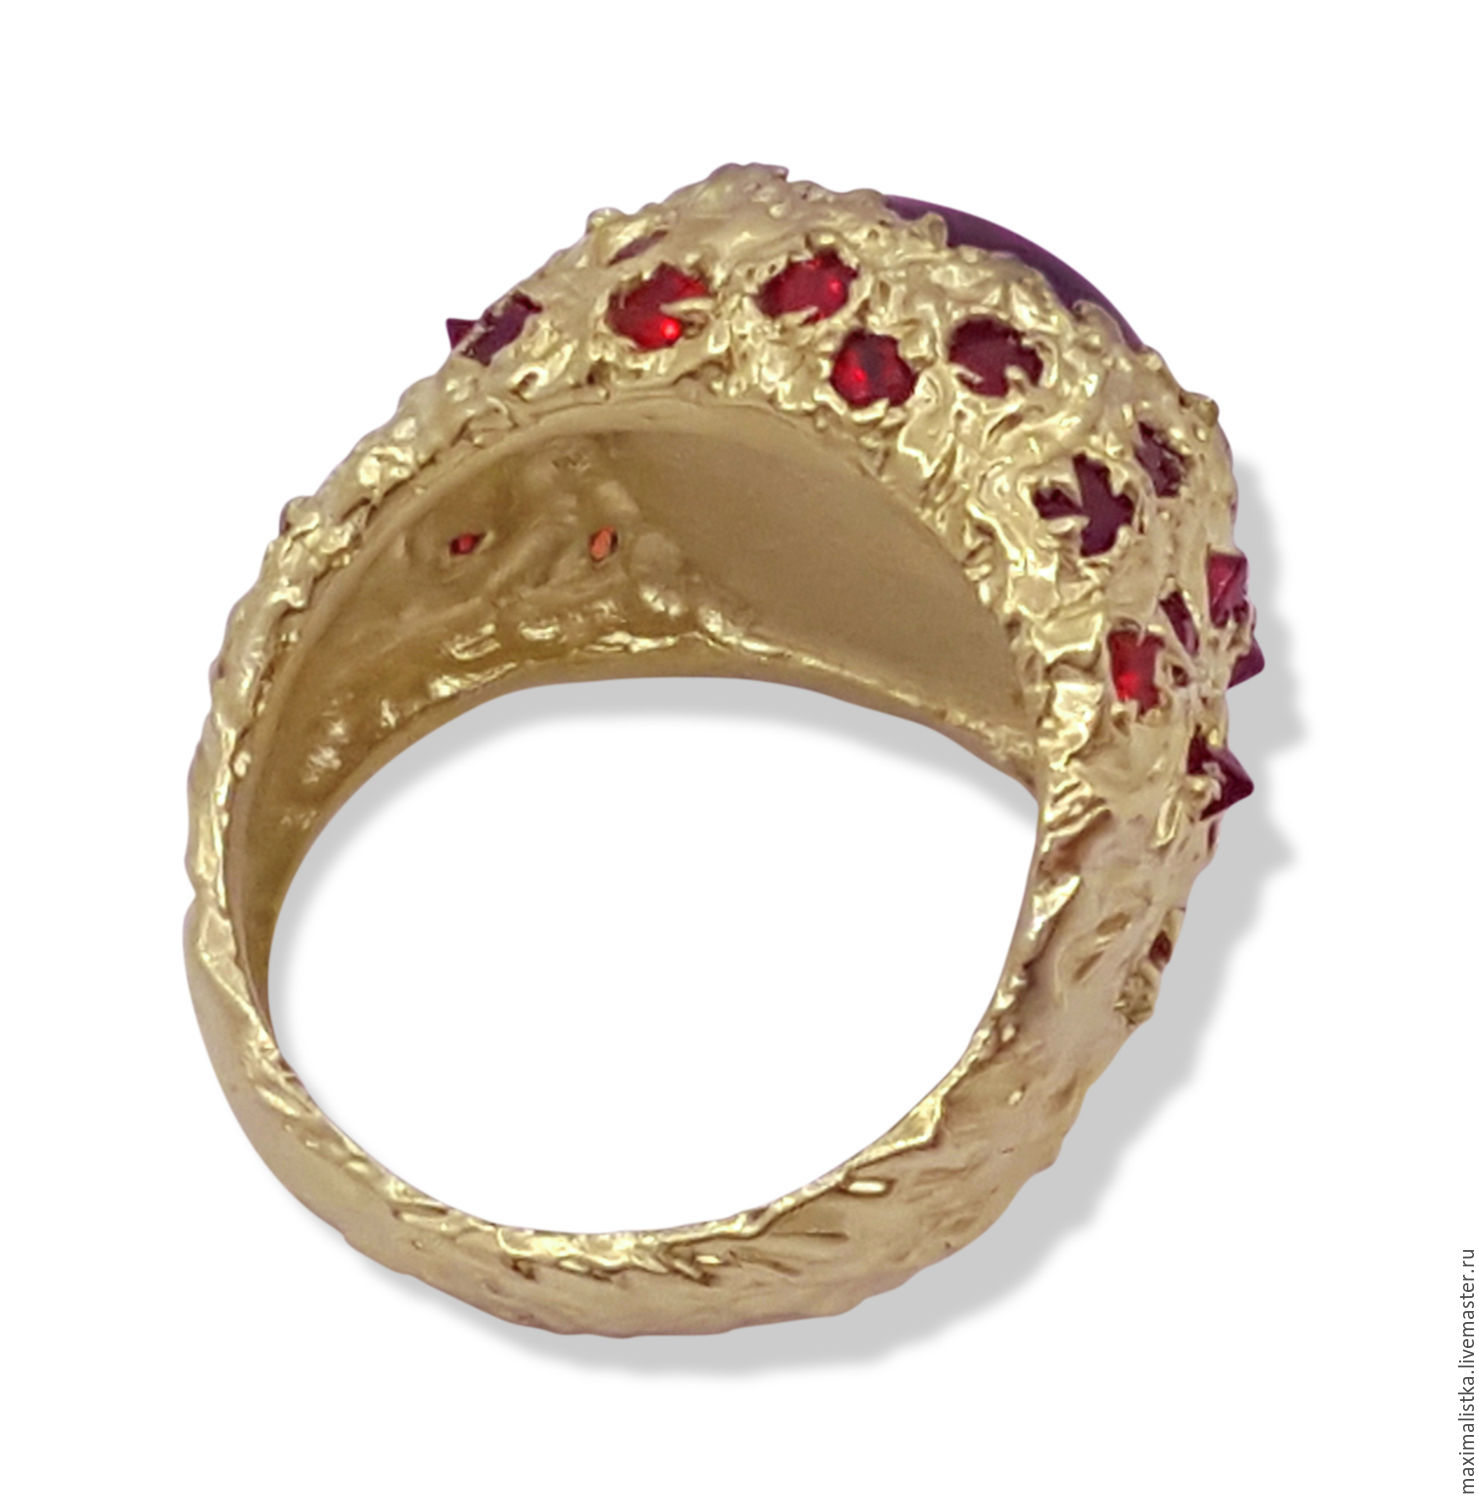 prices golden diamond ring travelshoot skyrim gold code rings item tanishq